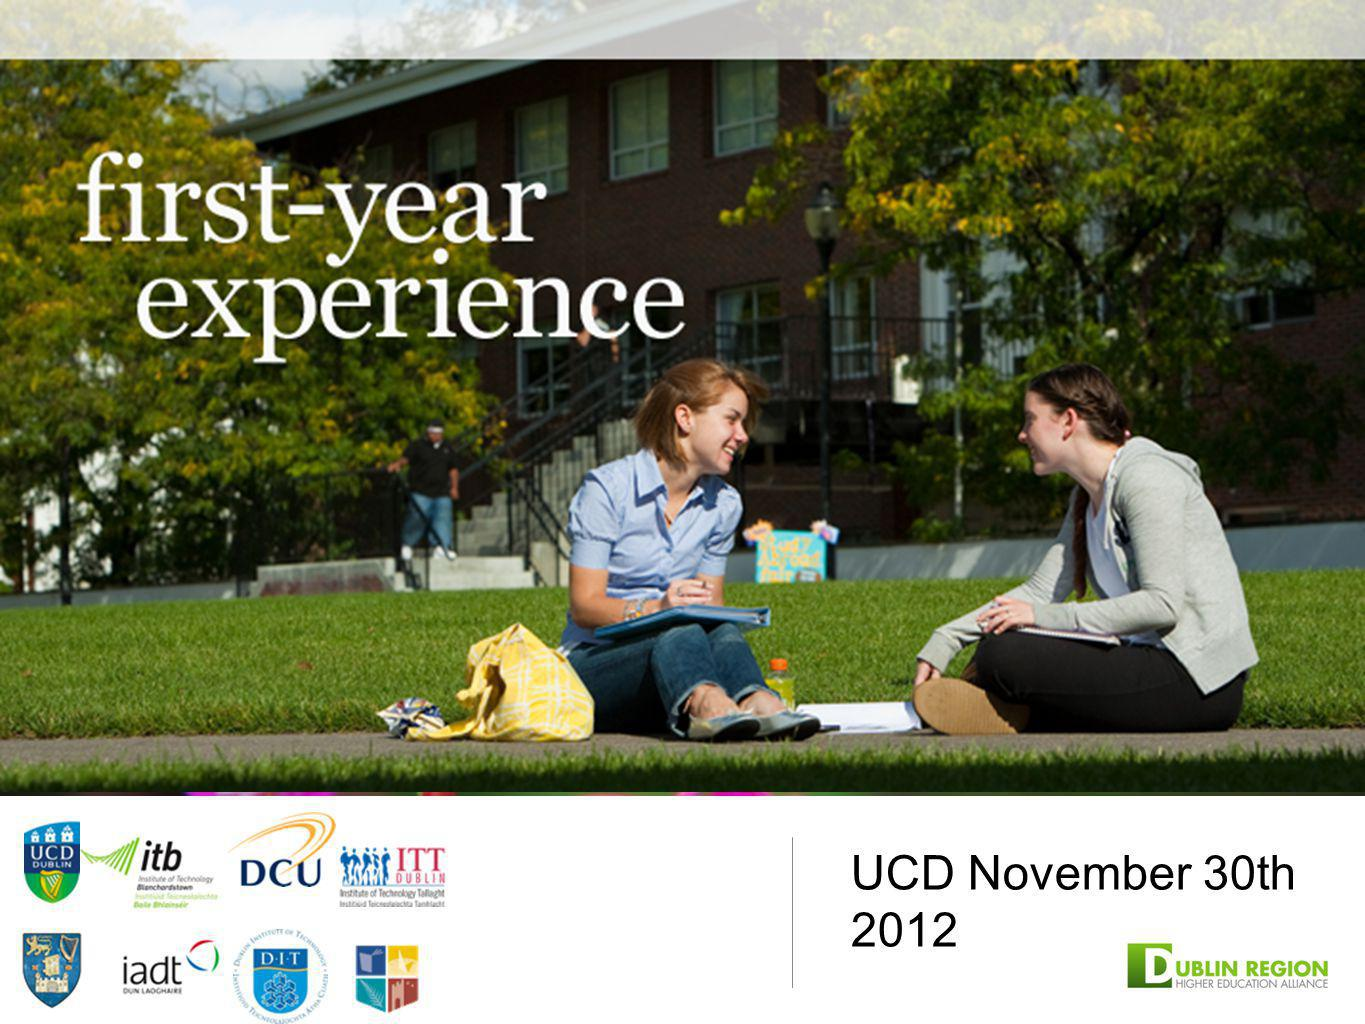 UCD November 30th 2012 The First Year Experience